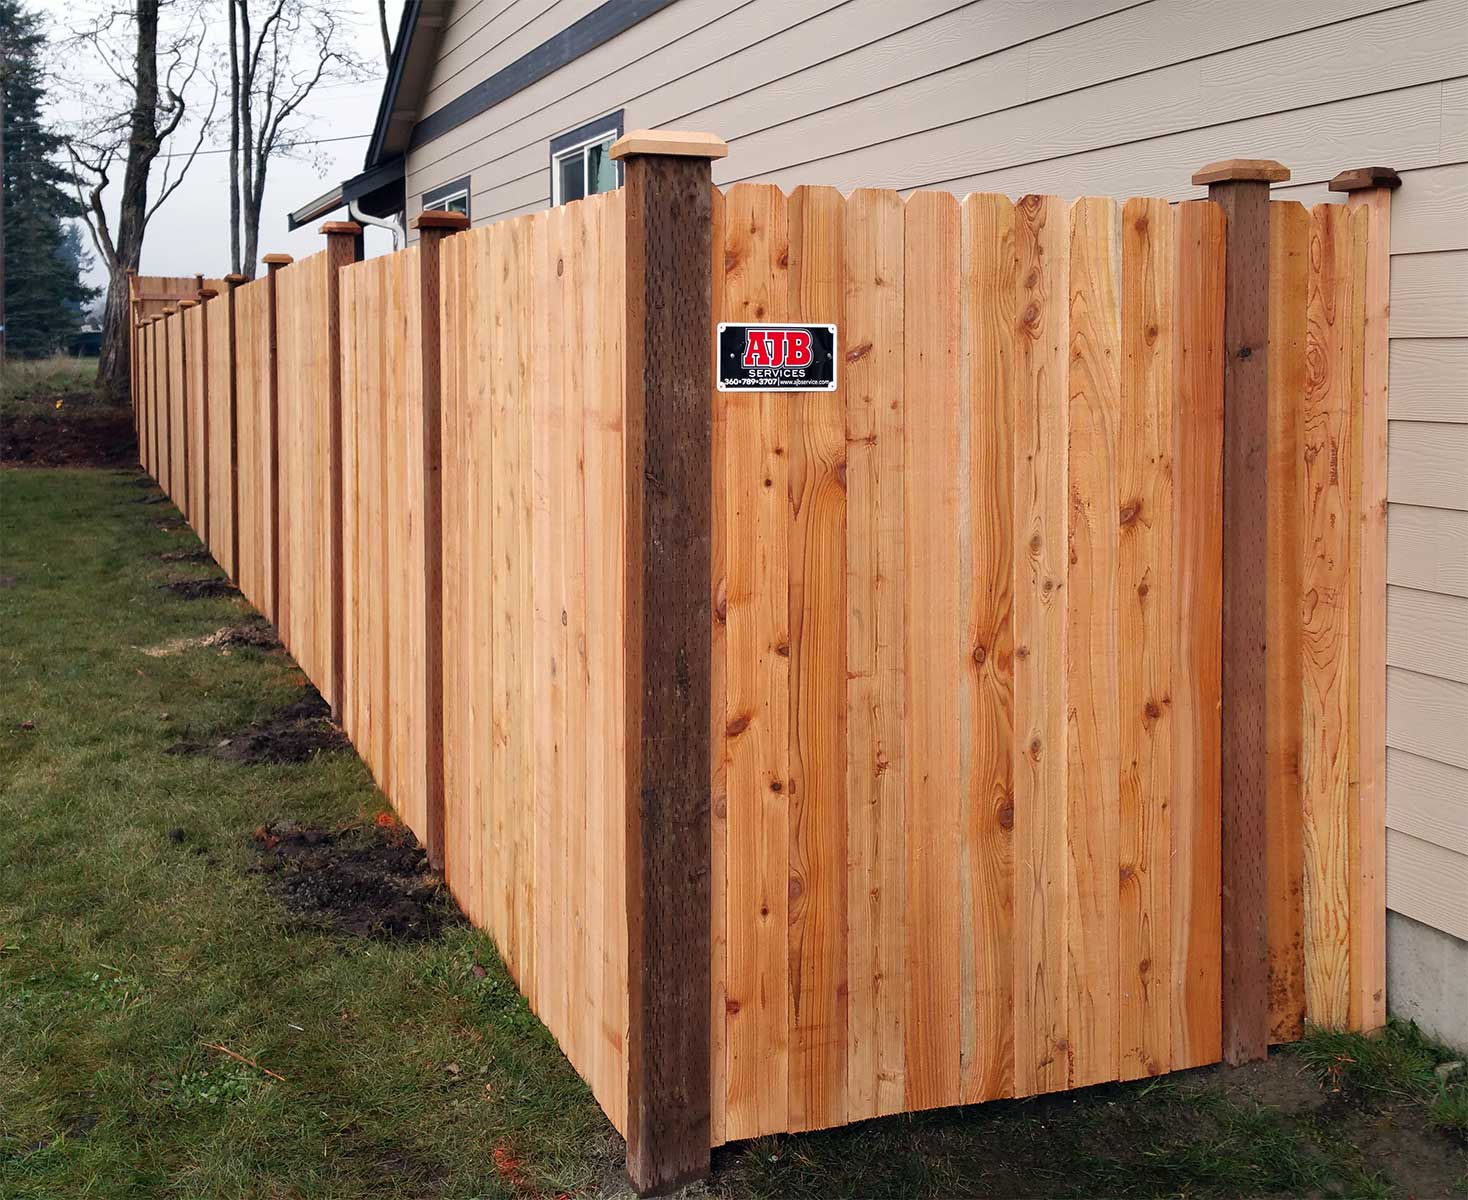 Security fence ajb landscaping fence dog ear fences like this one in rochester provide cost effective privacy and security baanklon Gallery